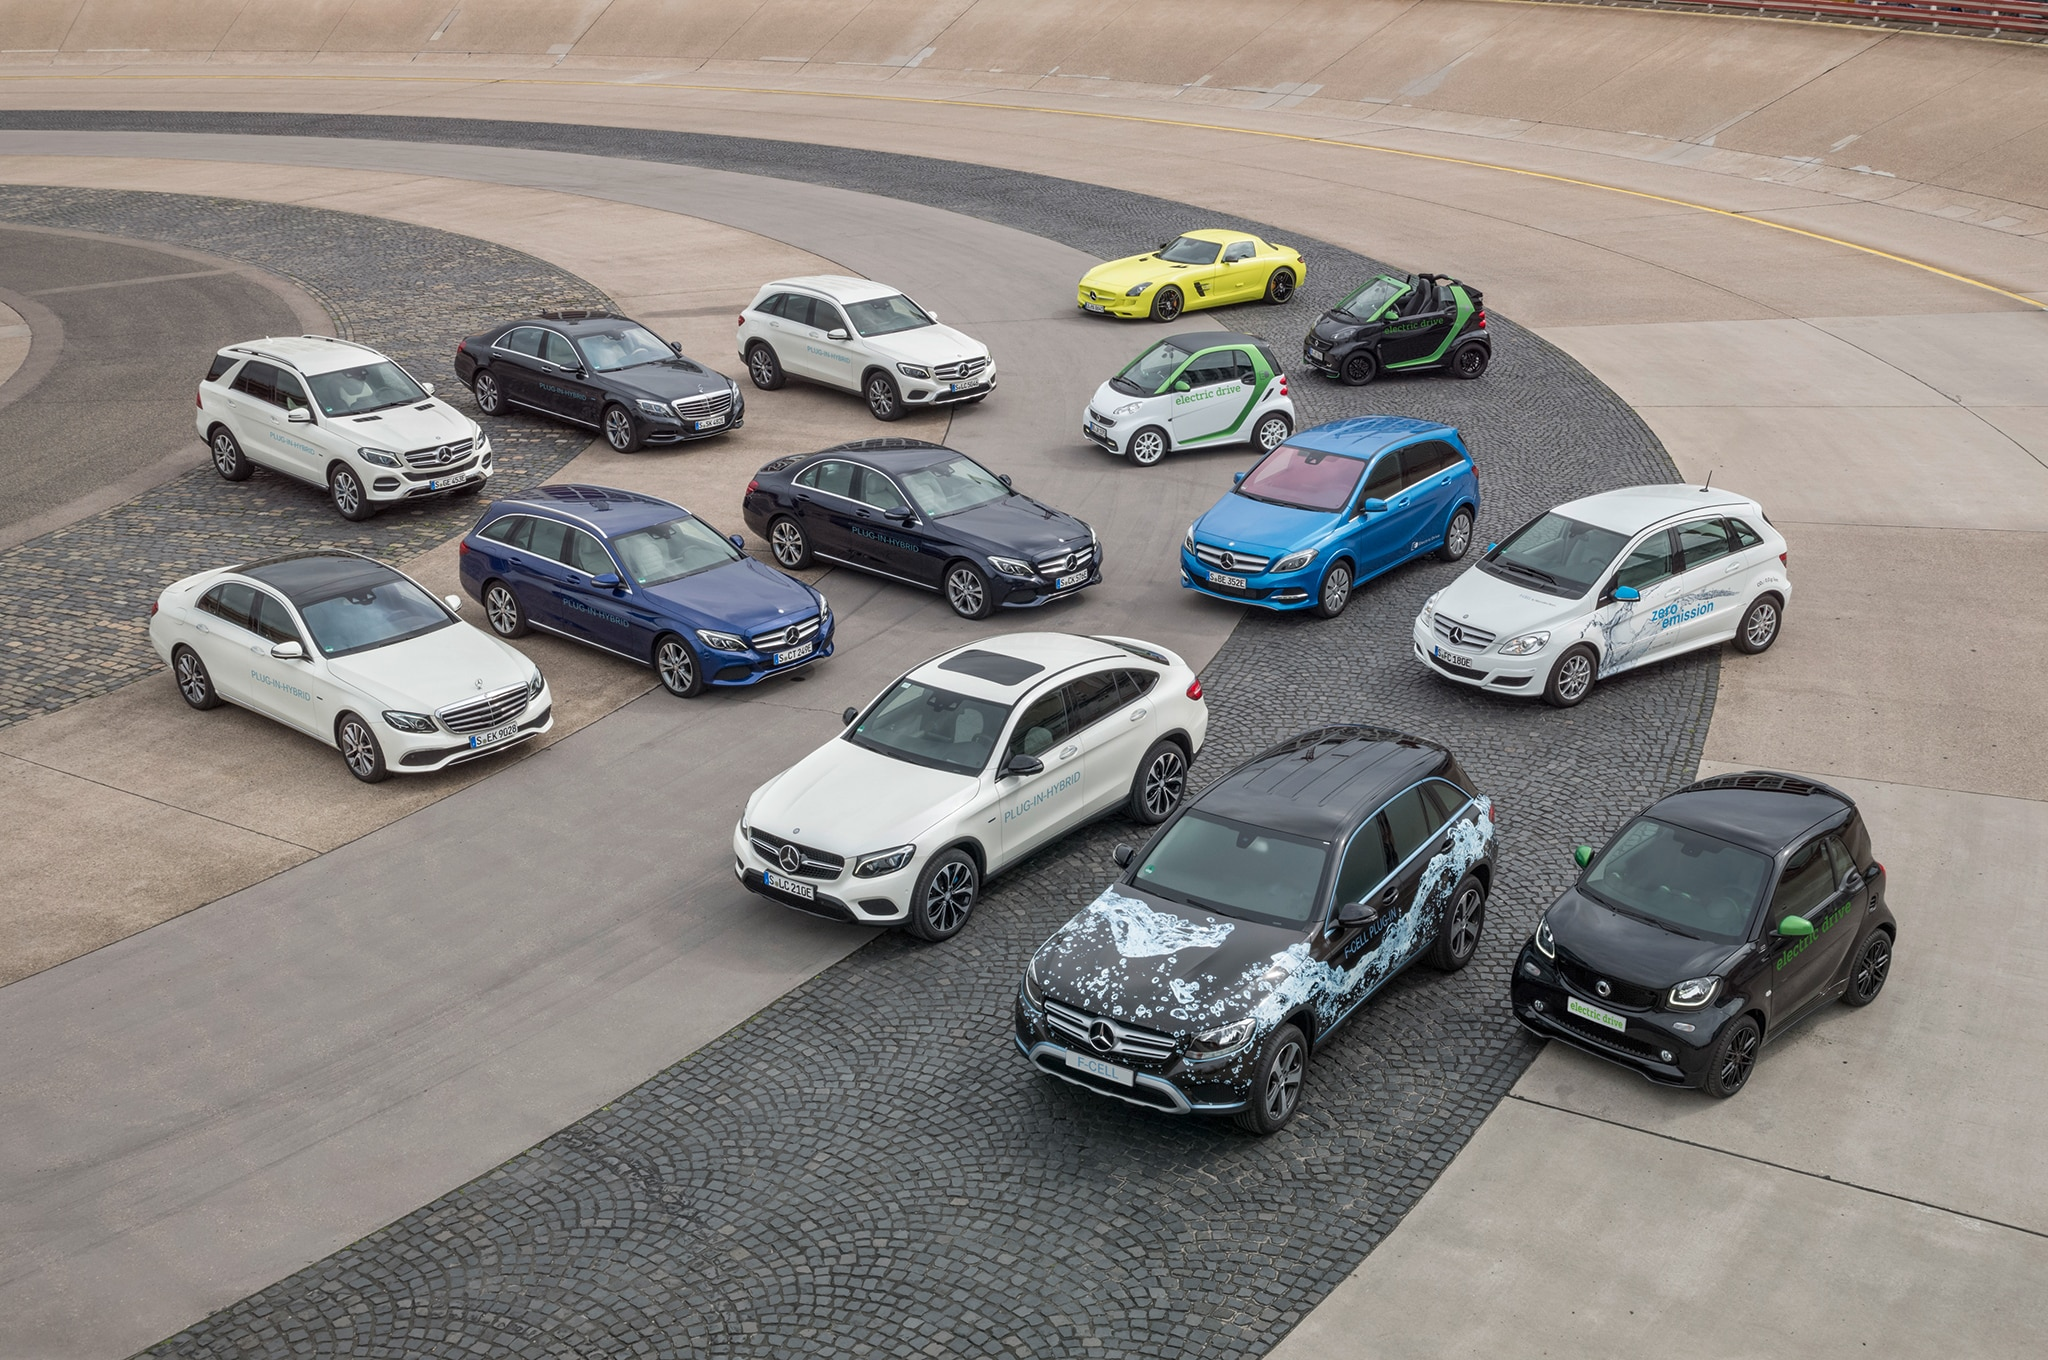 Mercedes Benz hybrid and electric vehicles